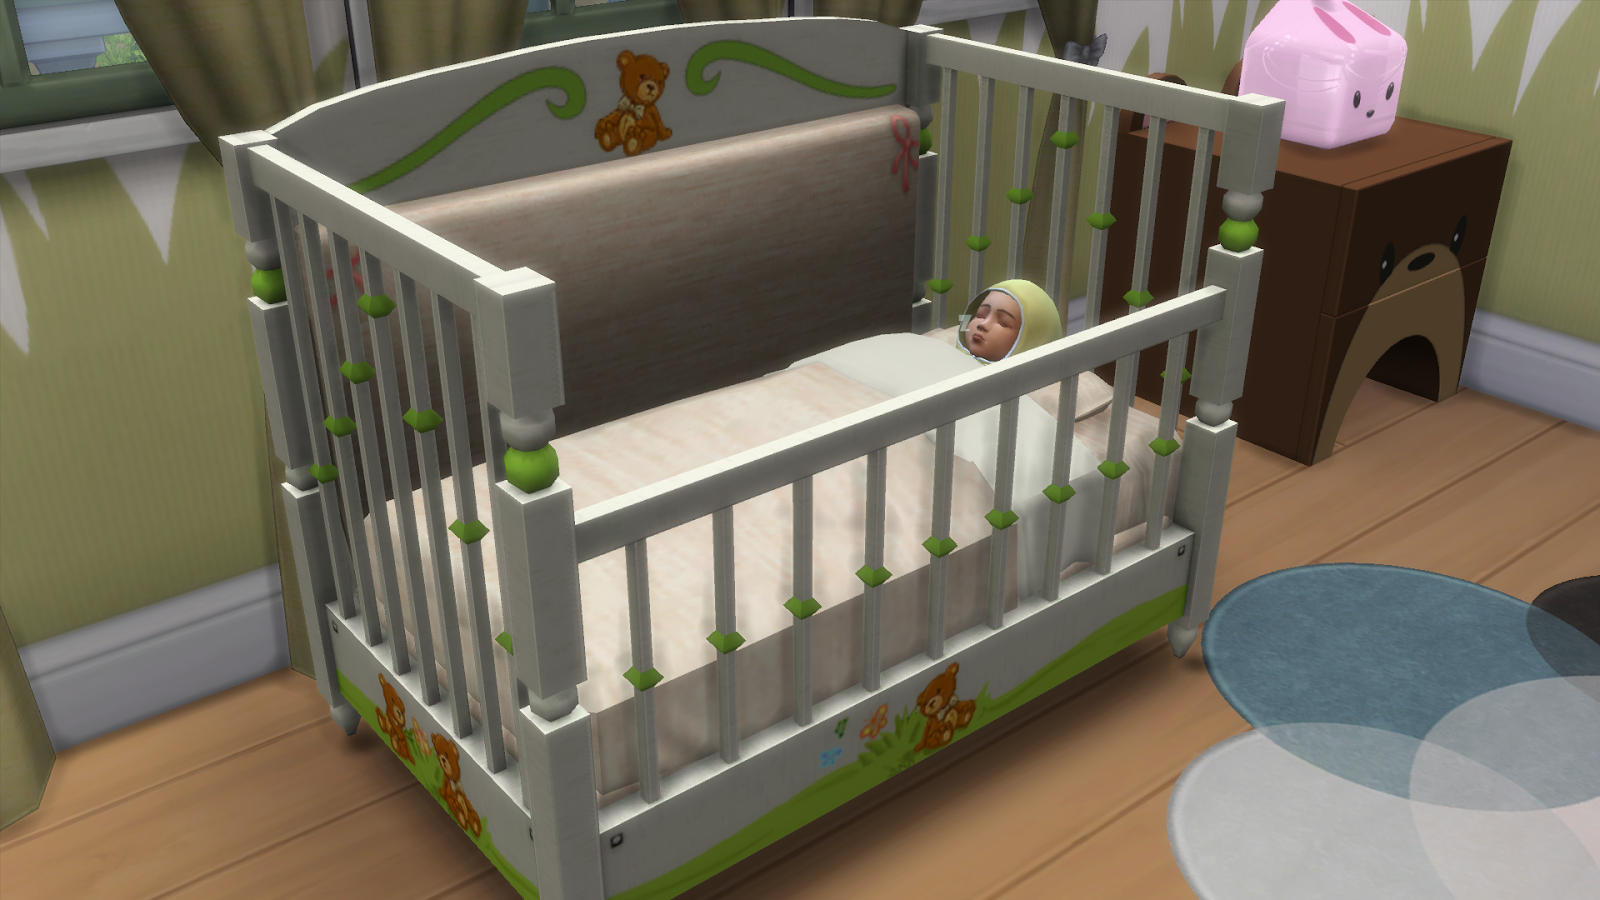 My Sims 4 Blog TS3 Animal Cribs Conversion For Toddlers